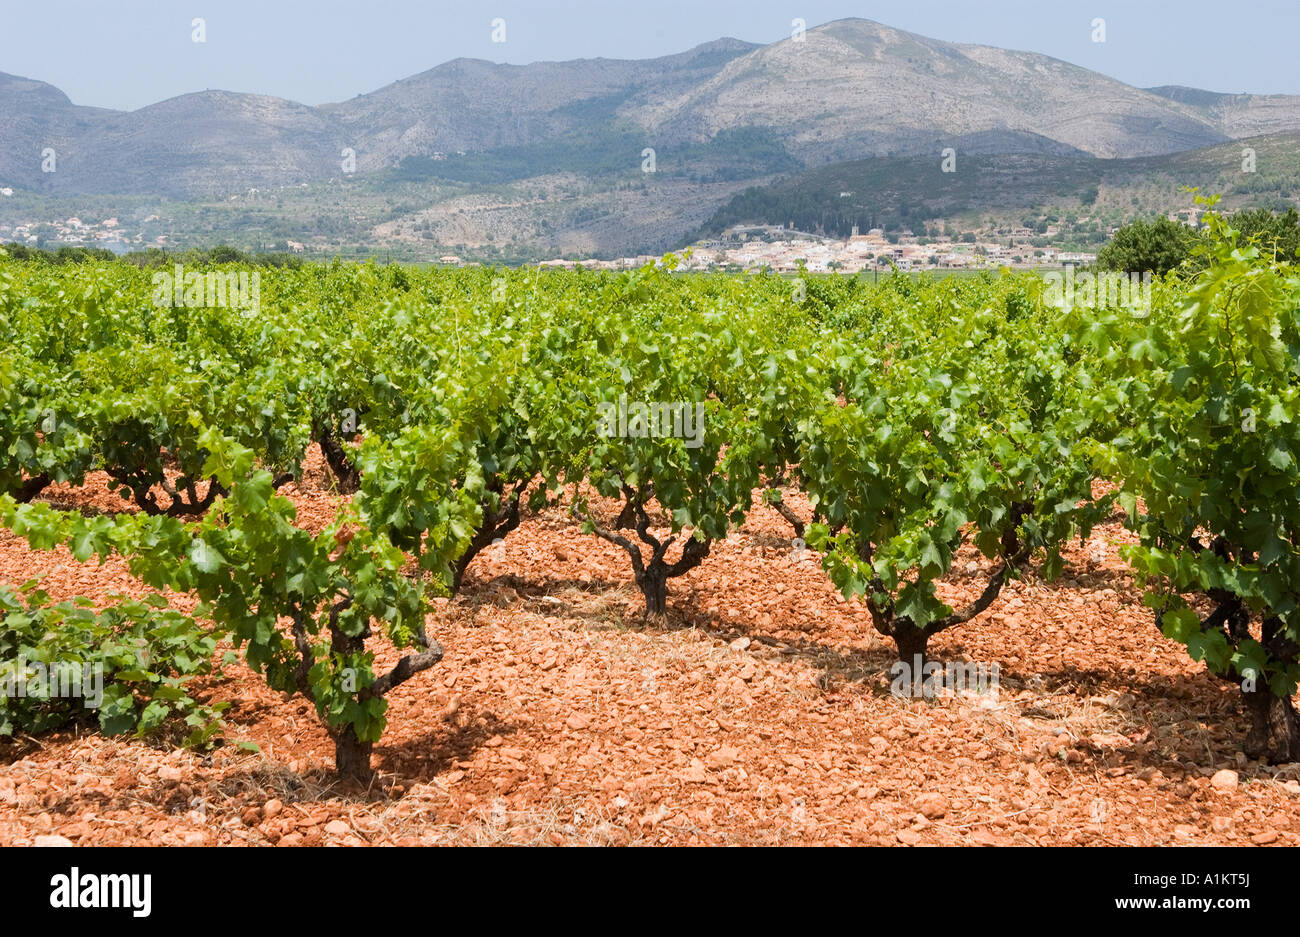 winegrowing in Jalon Valley, Province Alicante, Spain - Stock Image